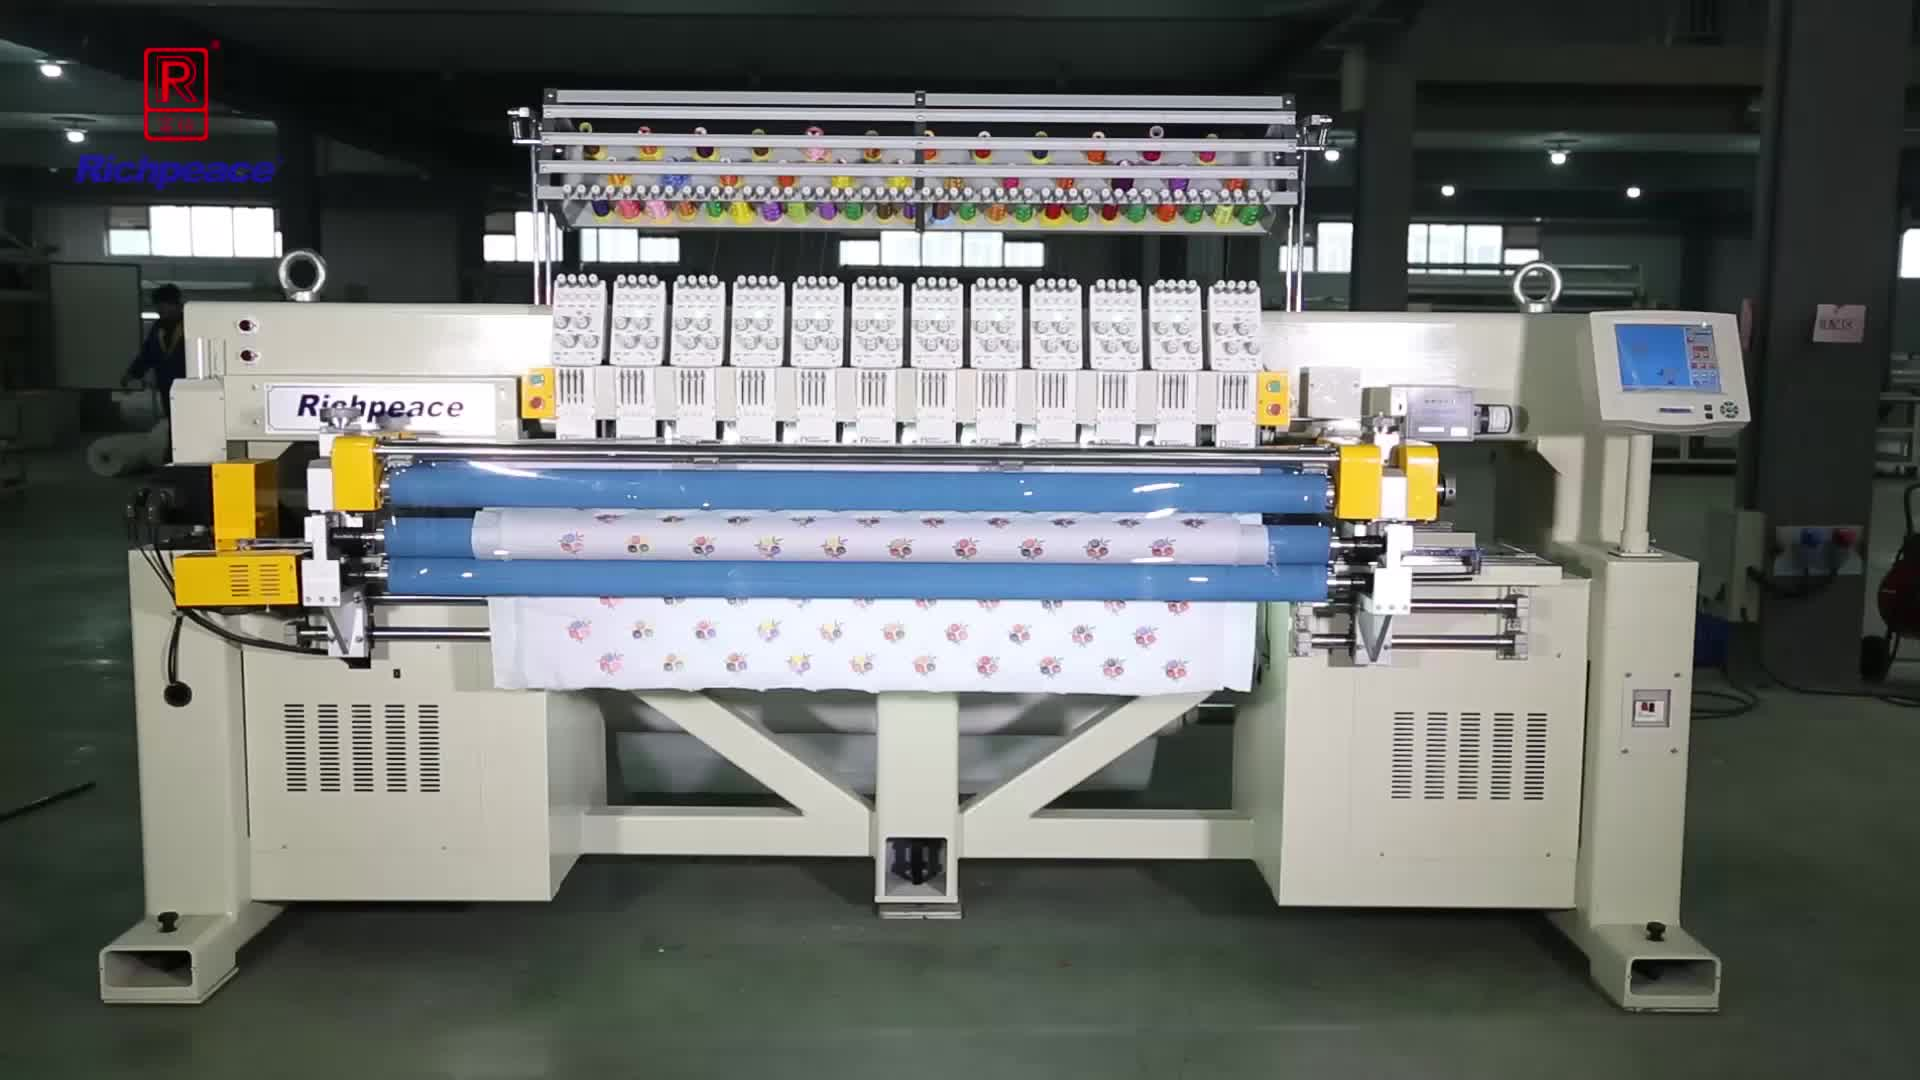 Richpeace Computerized Quilting & Embroidery Machine